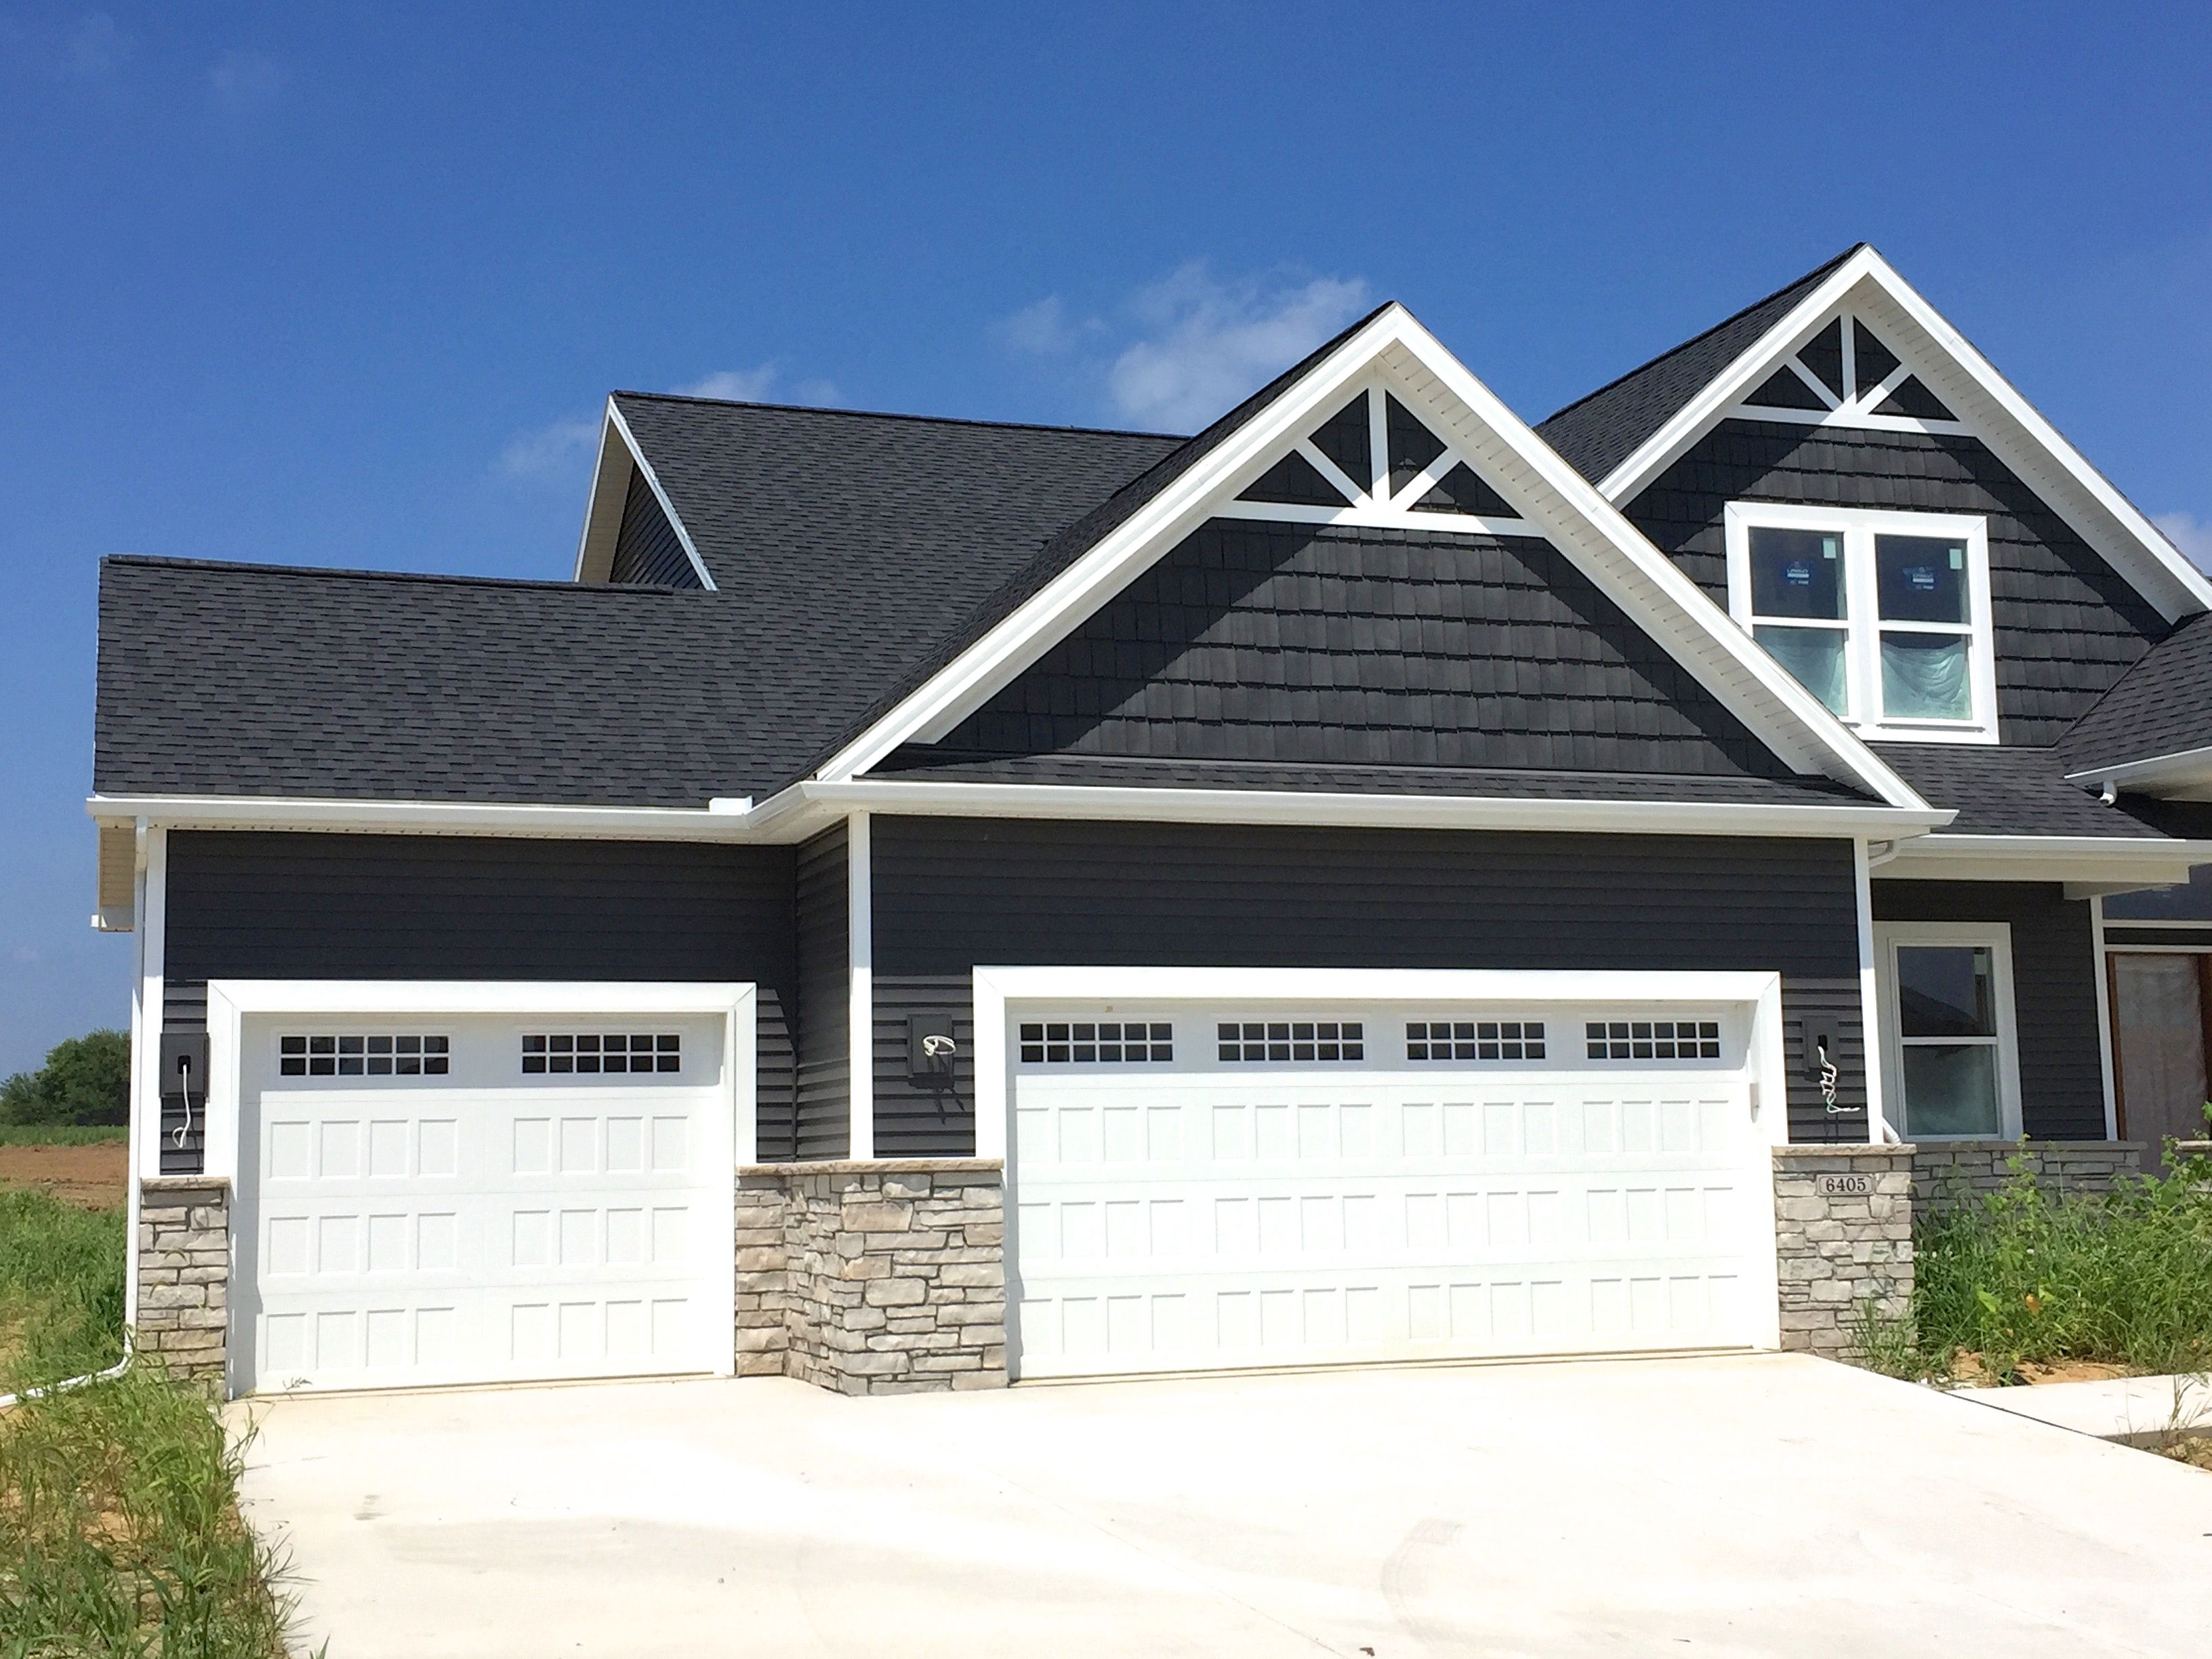 Best Gray House Exterior Image By Kristina On For The Home 400 x 300